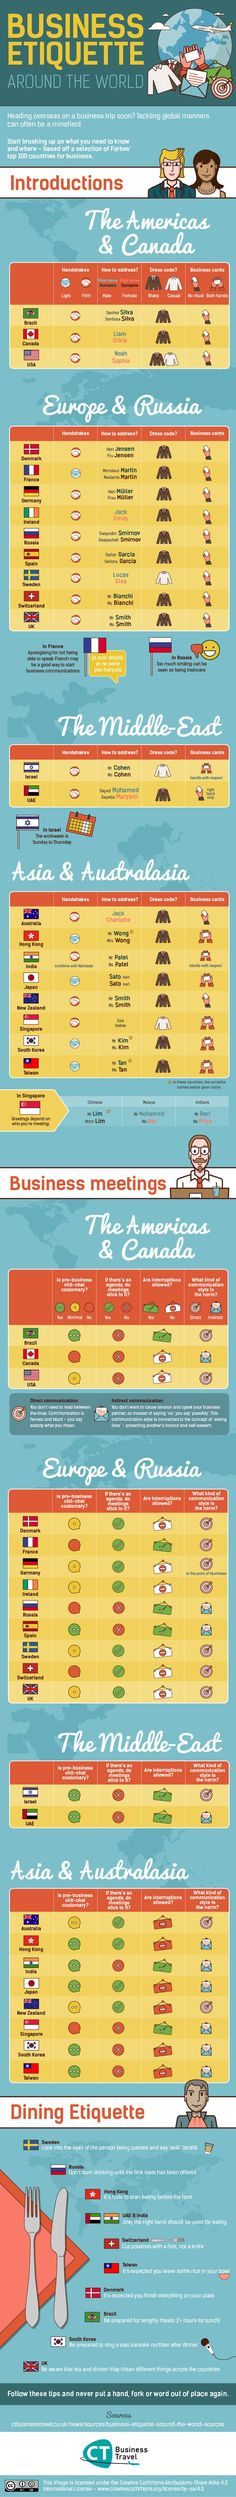 Business Etiquette around the world - Good to know with your international business clients!